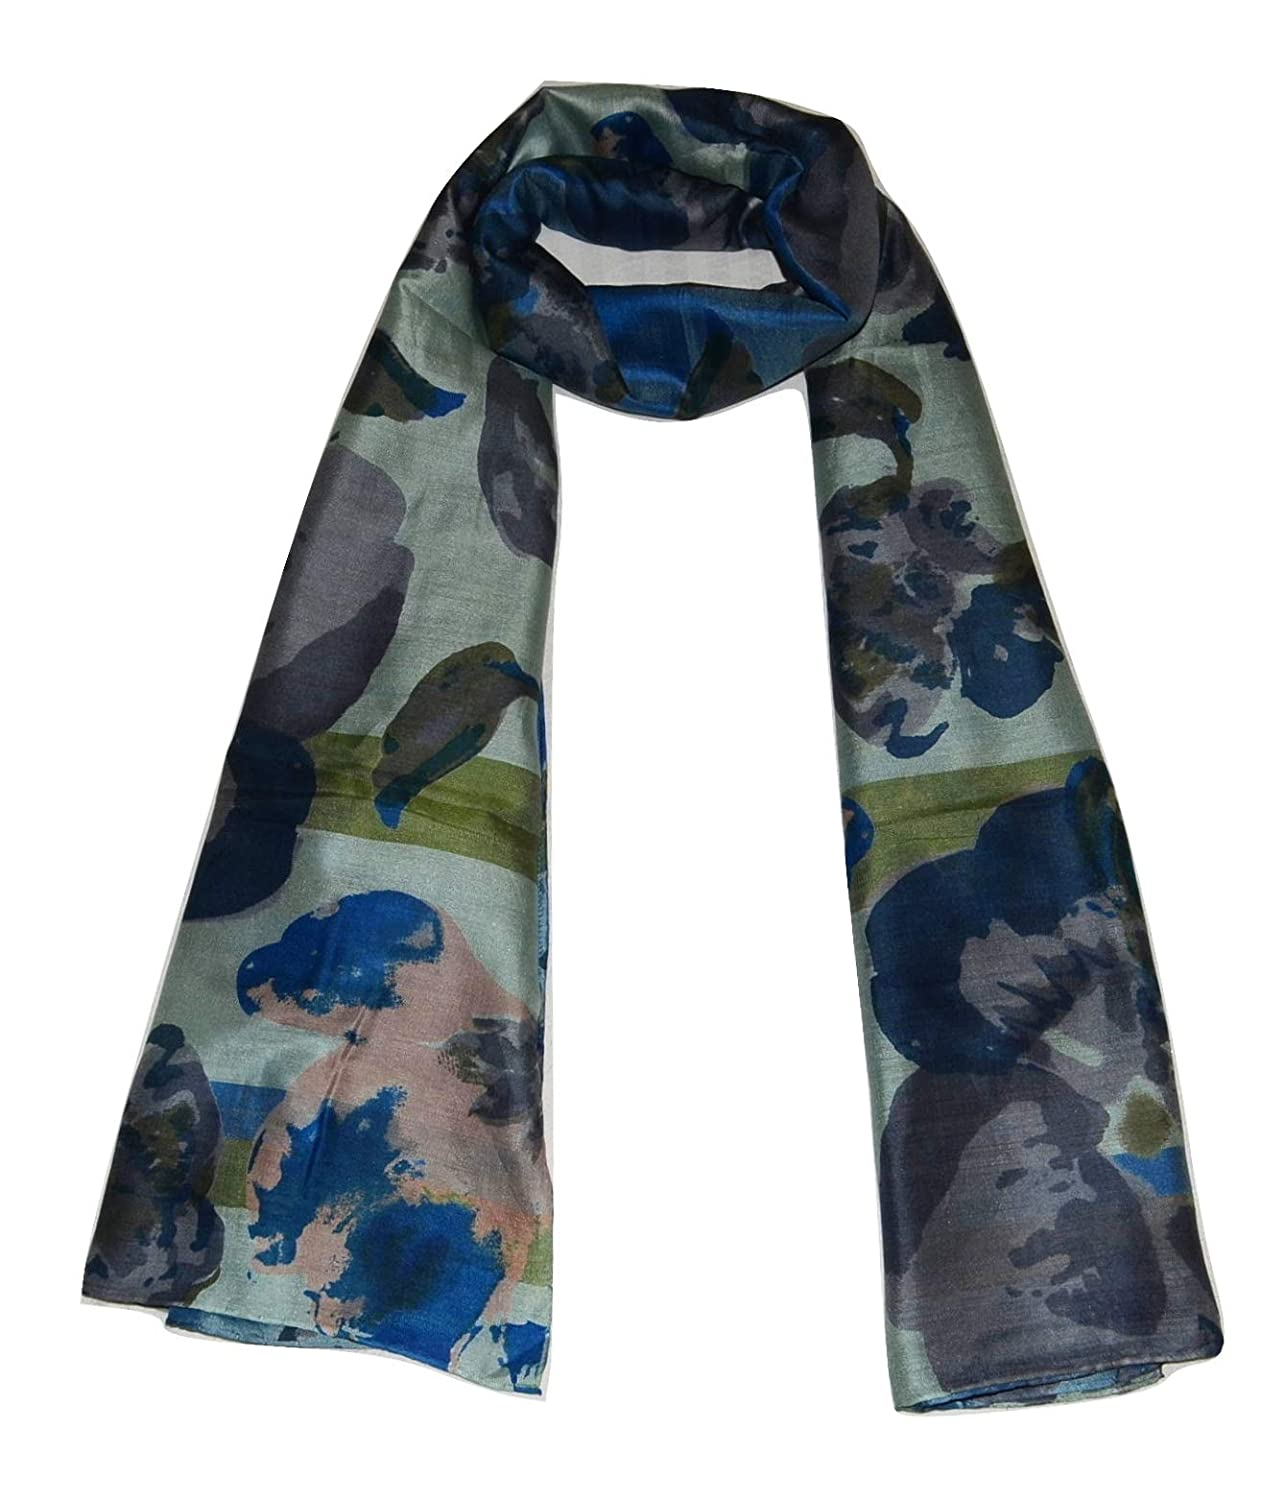 Multicolor 8 Handcrafted 100% Pure Mulberry Silk, Floral Print, Scarf Stole.